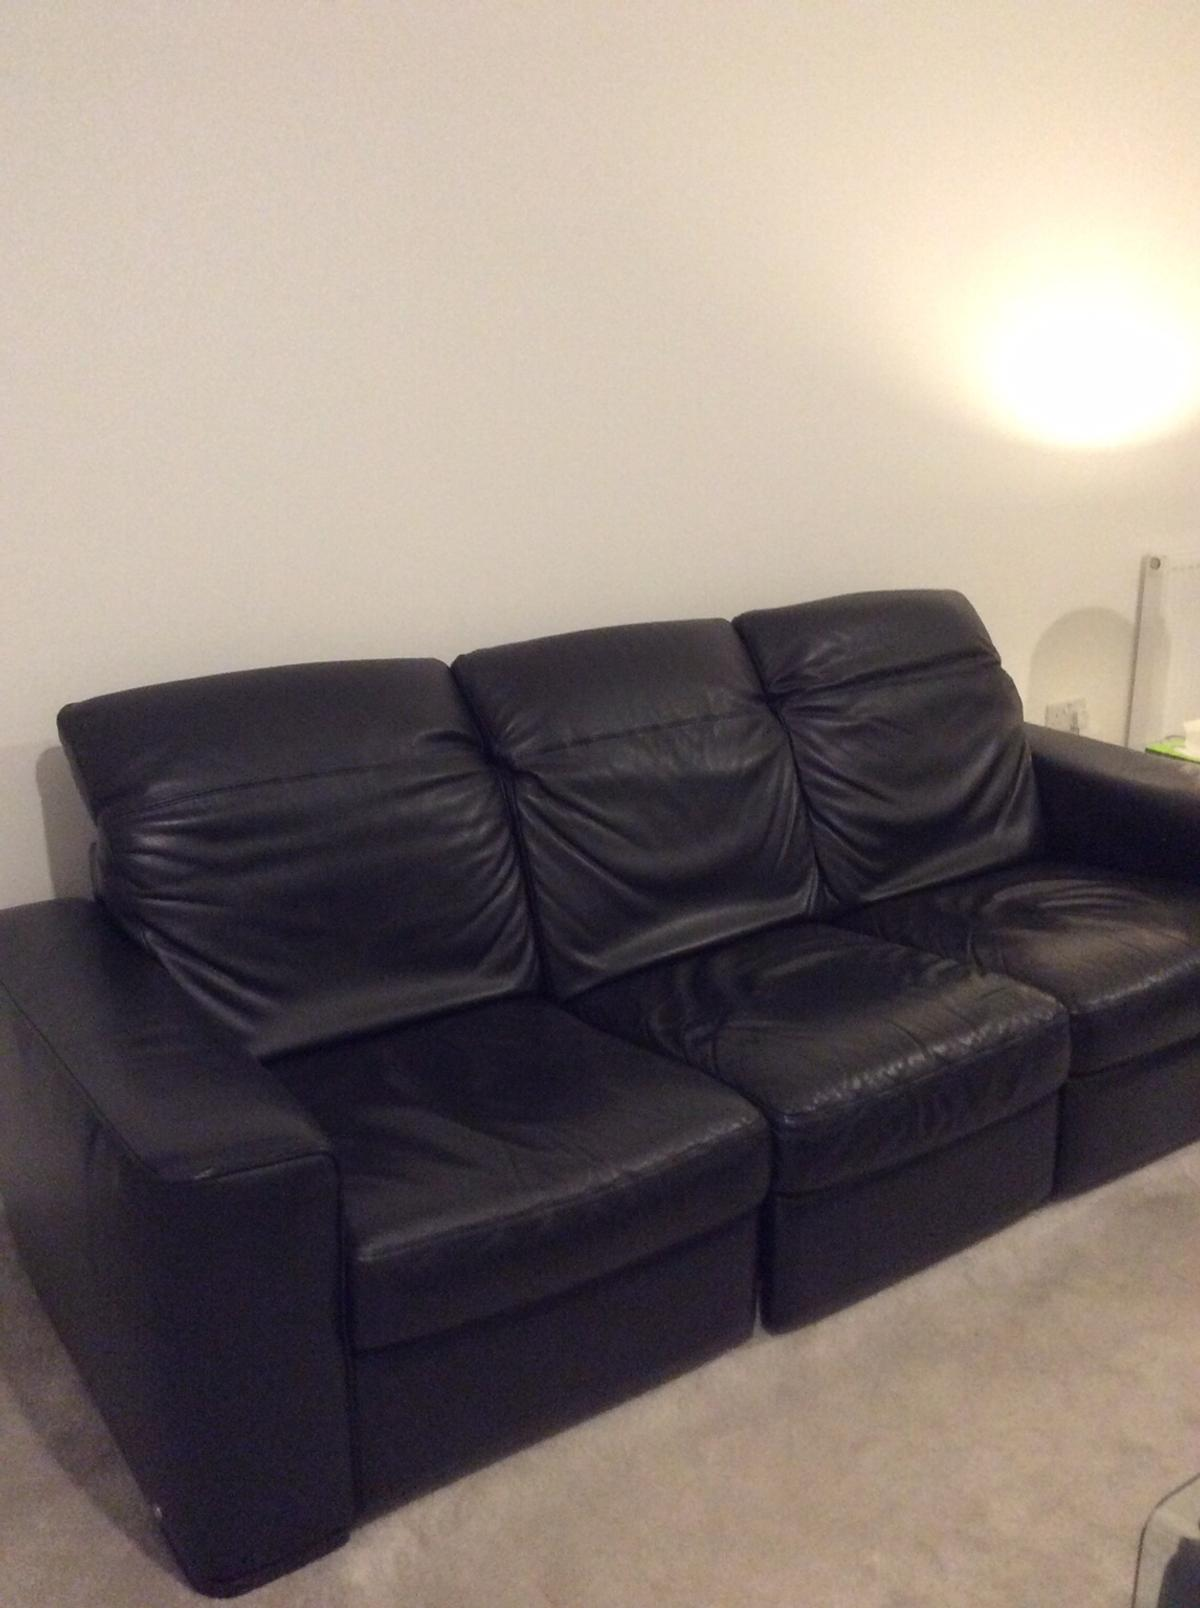 Marvelous Natuzzi Premium Black Leather Sofa And Chair In Preston For Theyellowbook Wood Chair Design Ideas Theyellowbookinfo